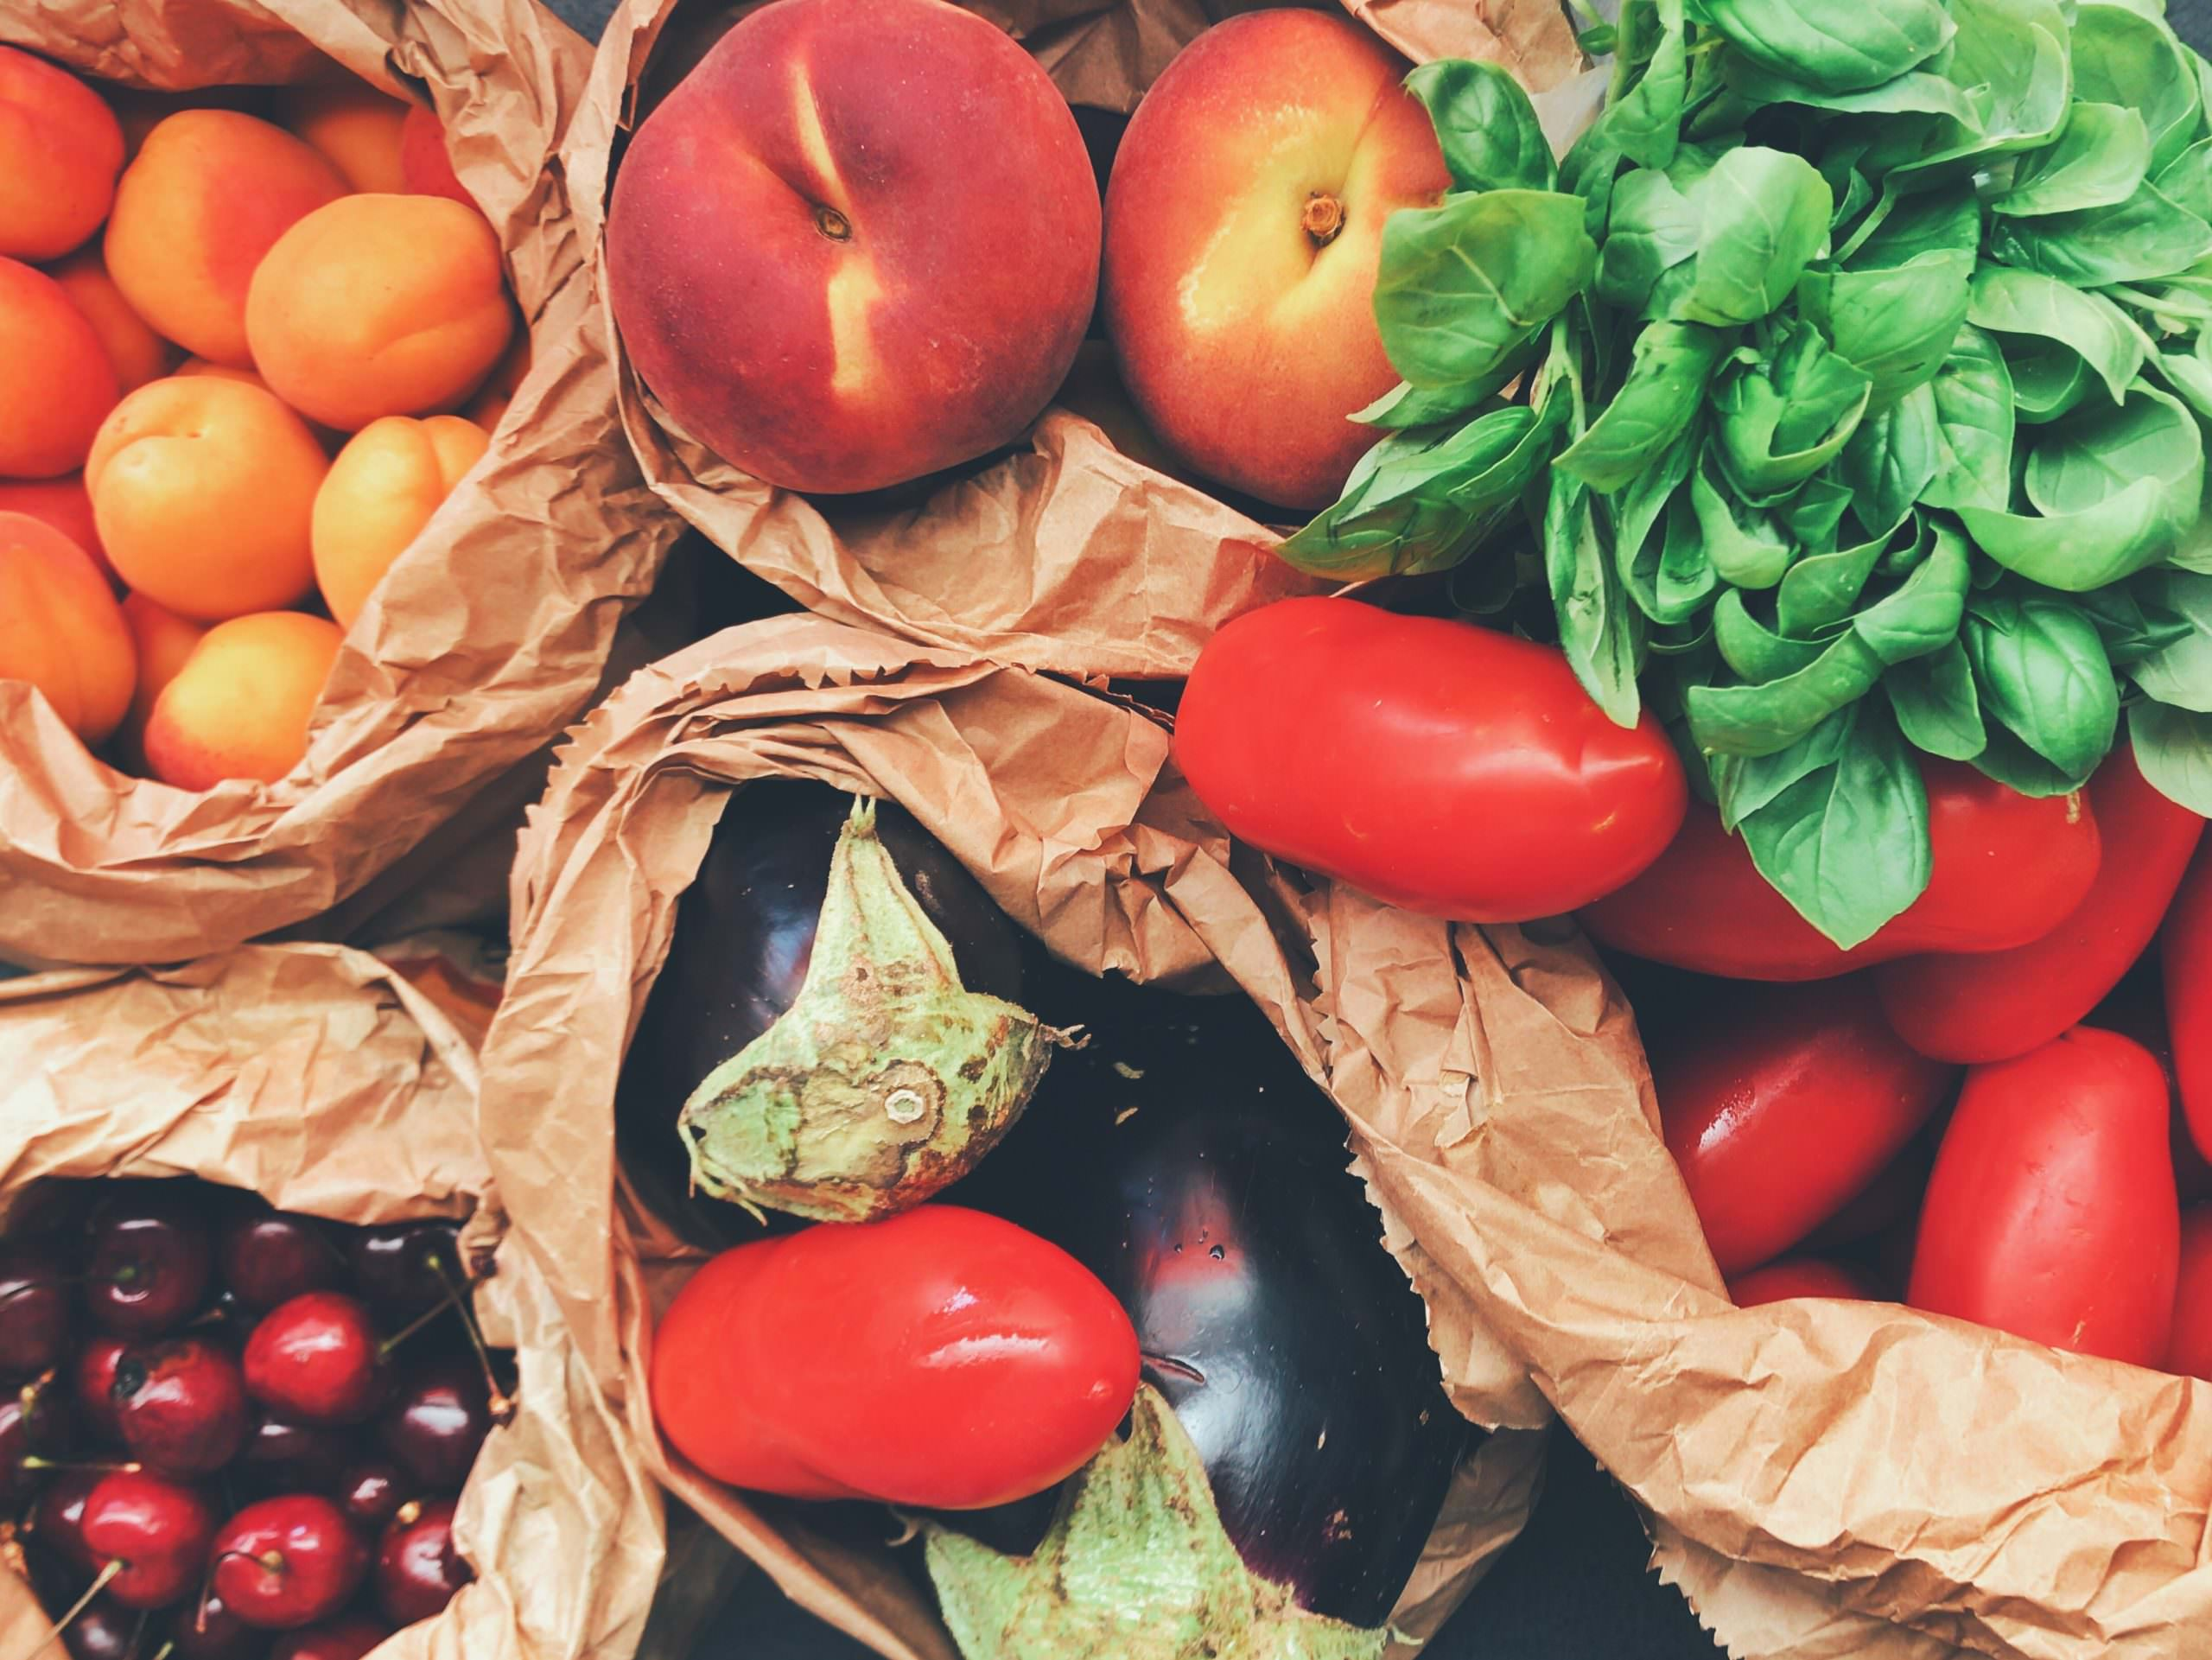 Nutritious and Delicious Ways to Reduce Food Waste